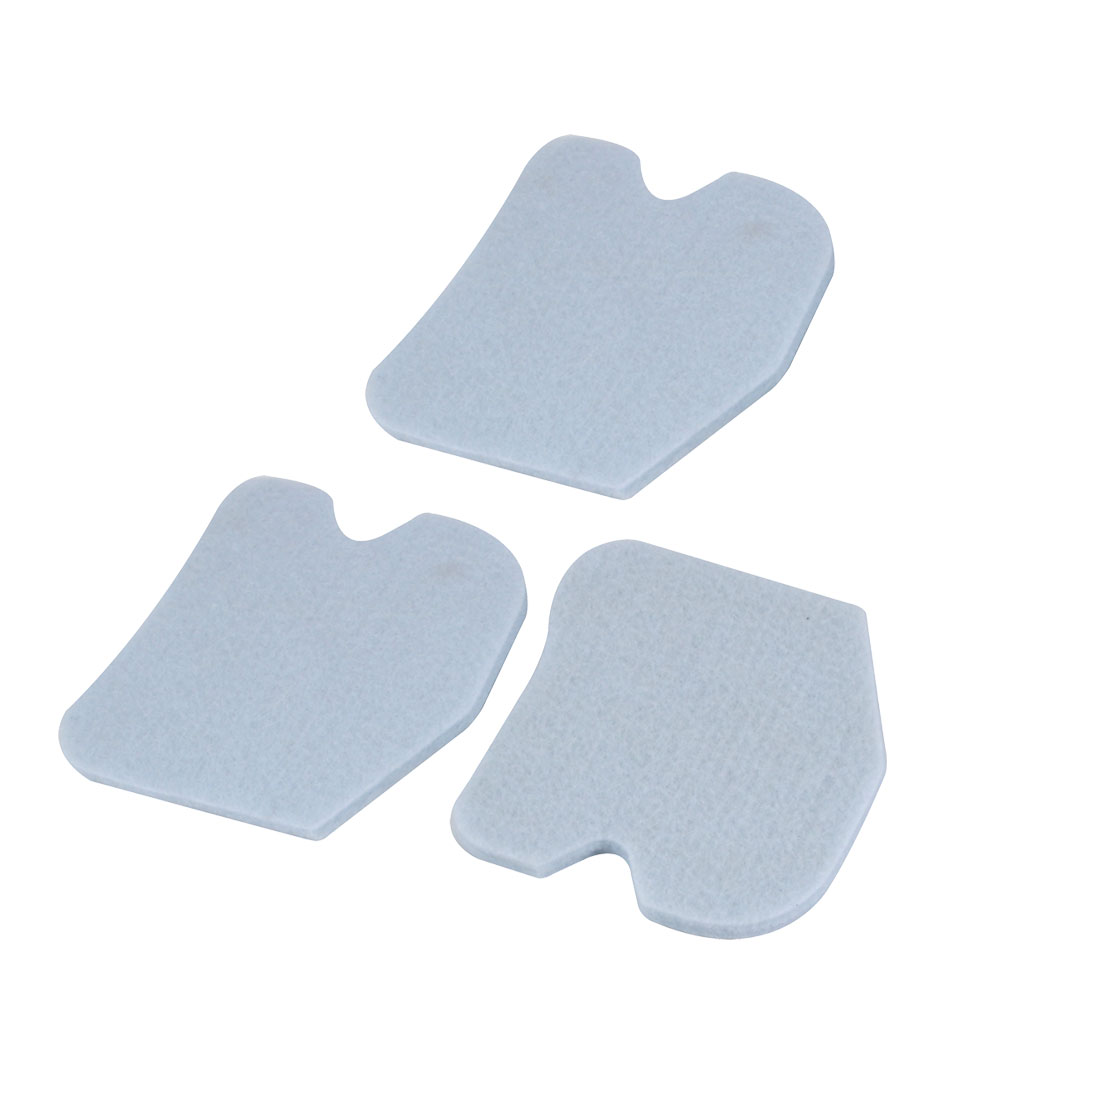 3pcs Replacement Parts Cotton Air Filter Cleaner for H236 Chainsaw Mower